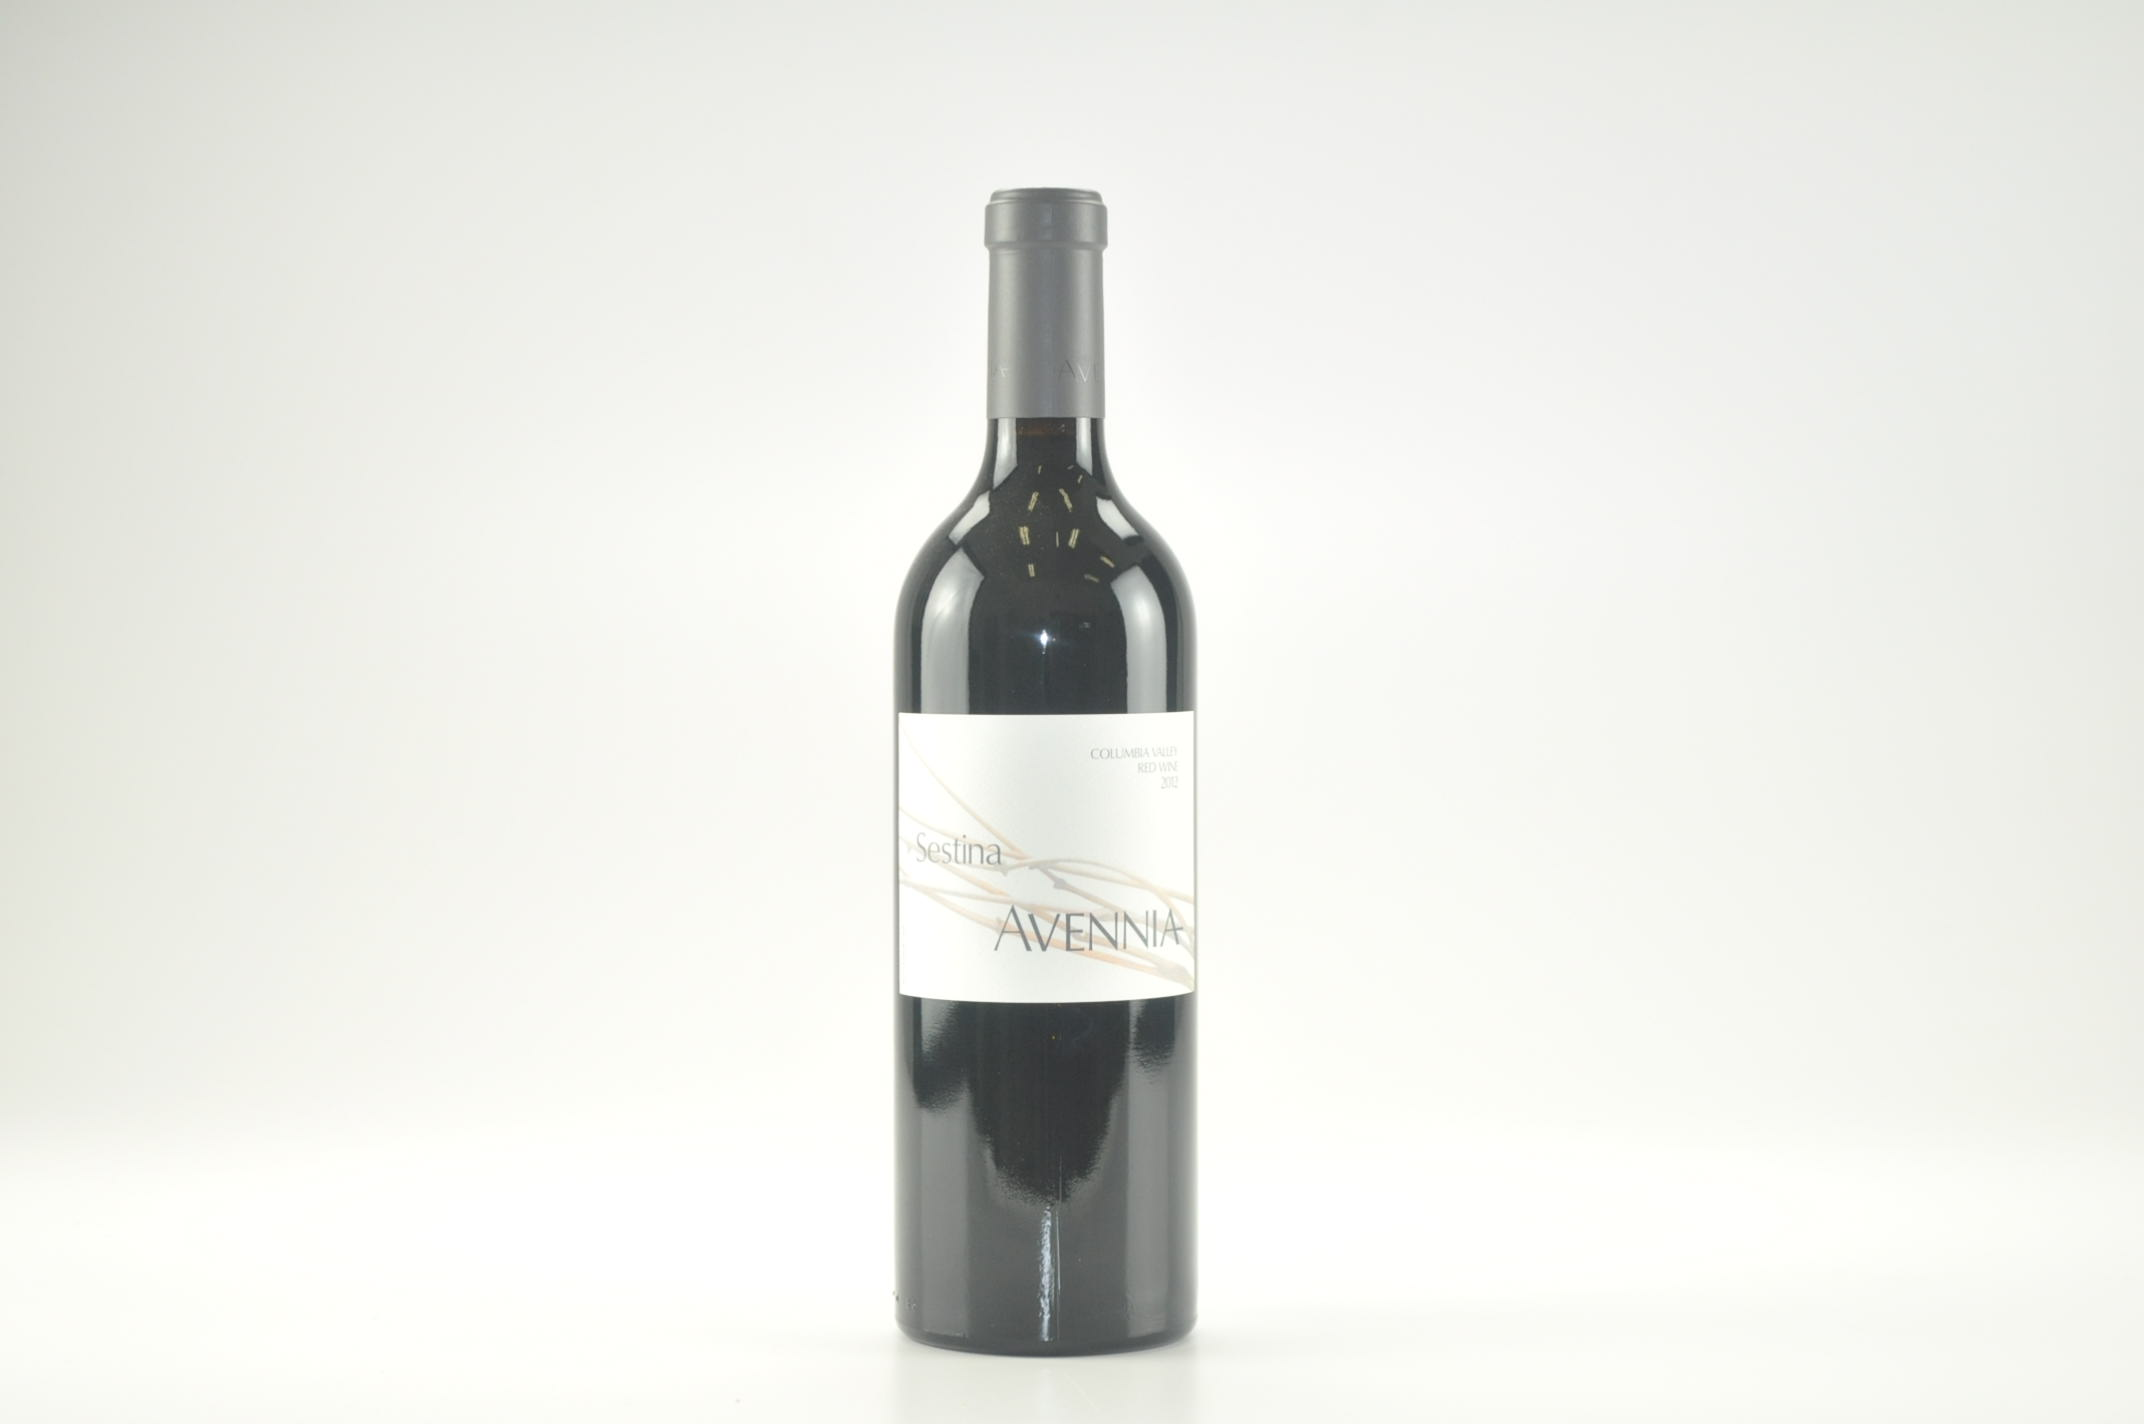 2012 Avennia Sestina Red Wine, Columbia Valley RP--95